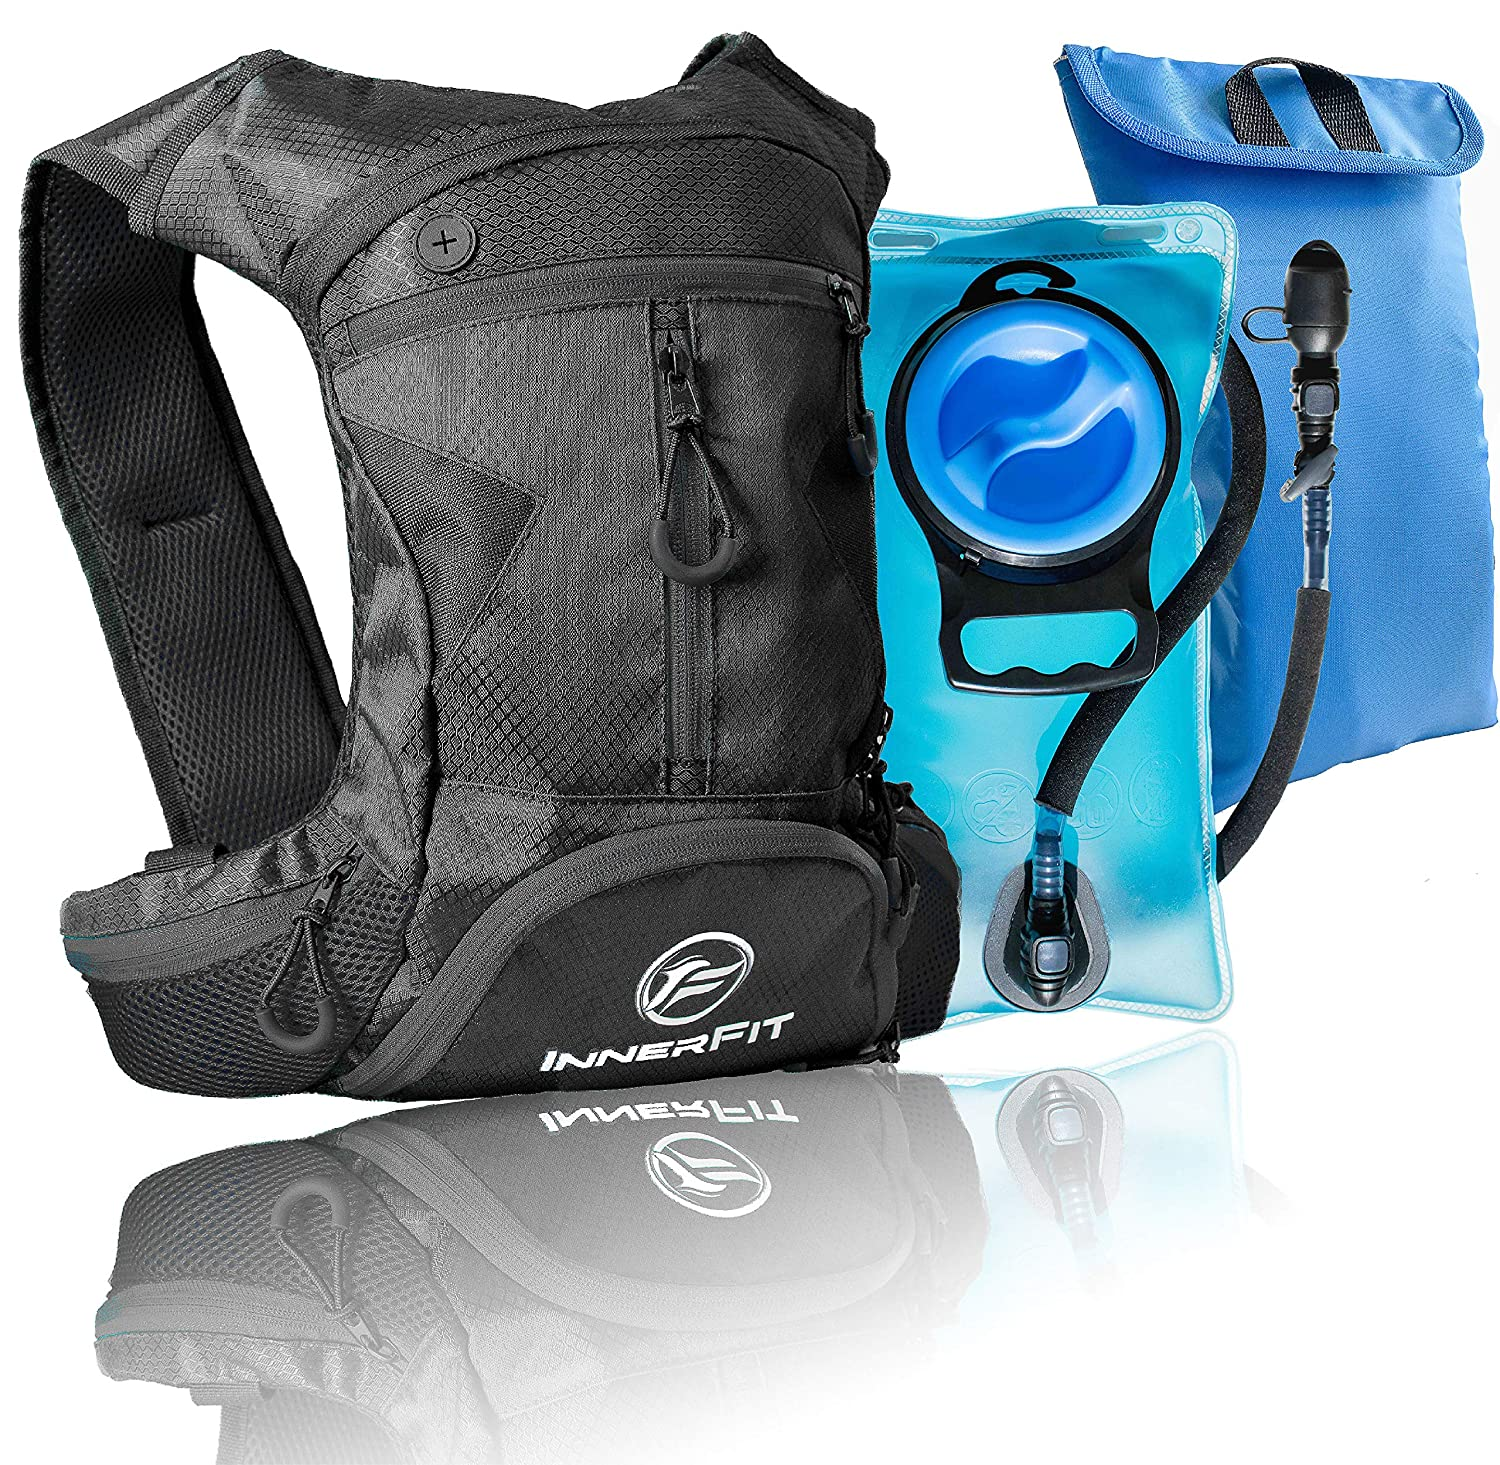 1390baa149ee InnerFit Insulated Hydration Backpack and Water Bladder, Durable Camel  Backpack Hydration Pack - Running, Hiking, Biking and Outdoor Activities -  ...